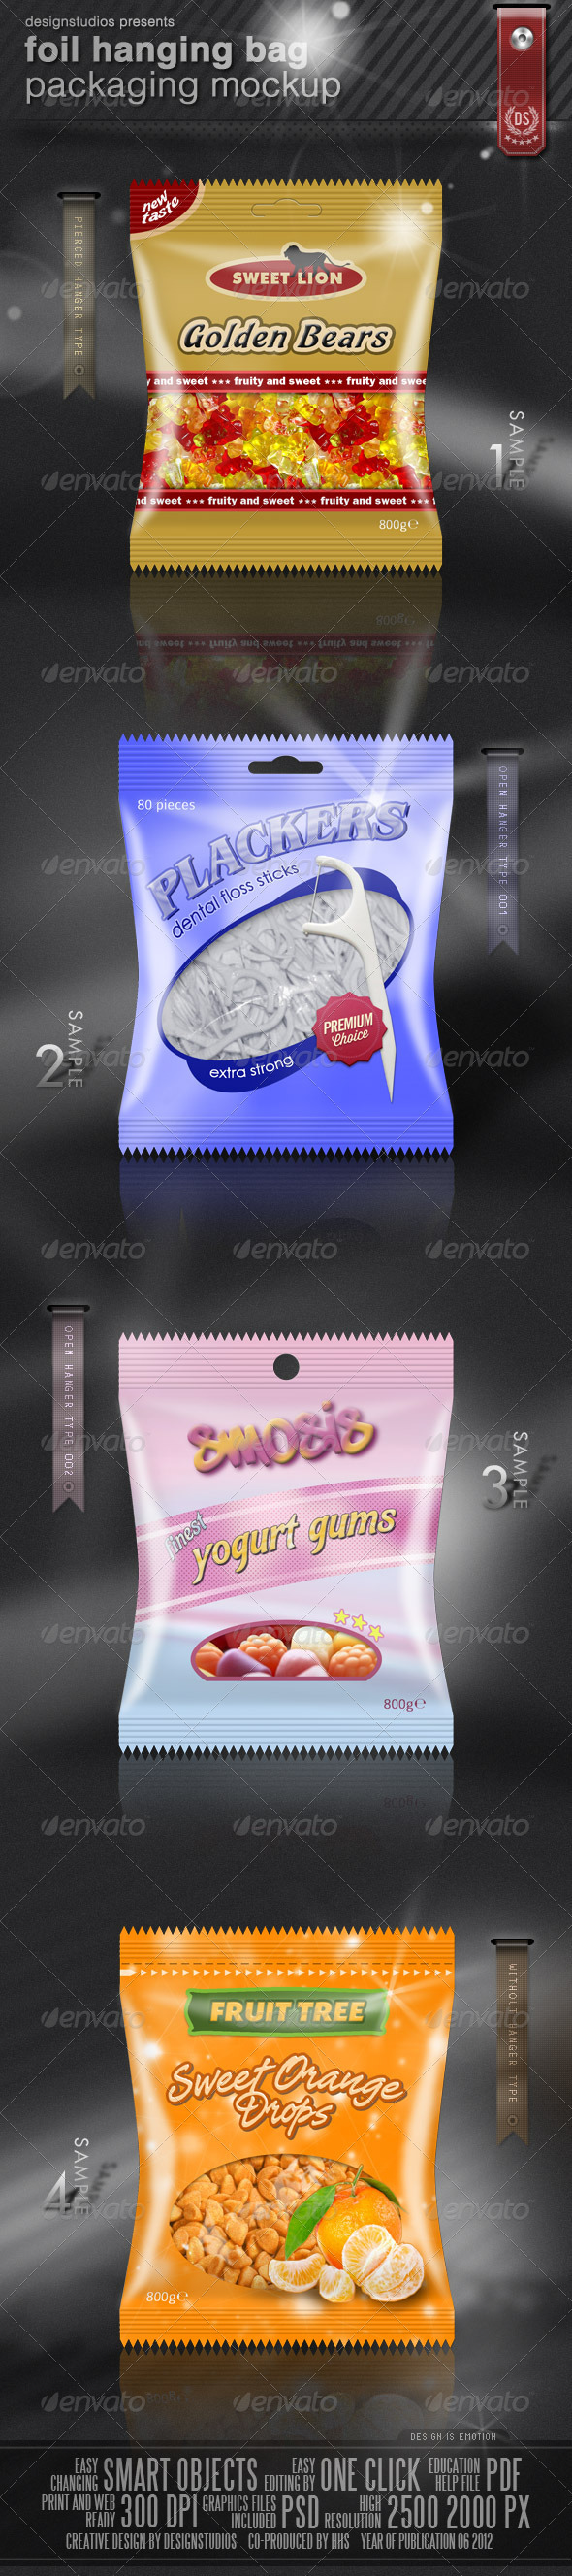 Foil Hanging Bag Packaging Mock-Up - Food and Drink Packaging